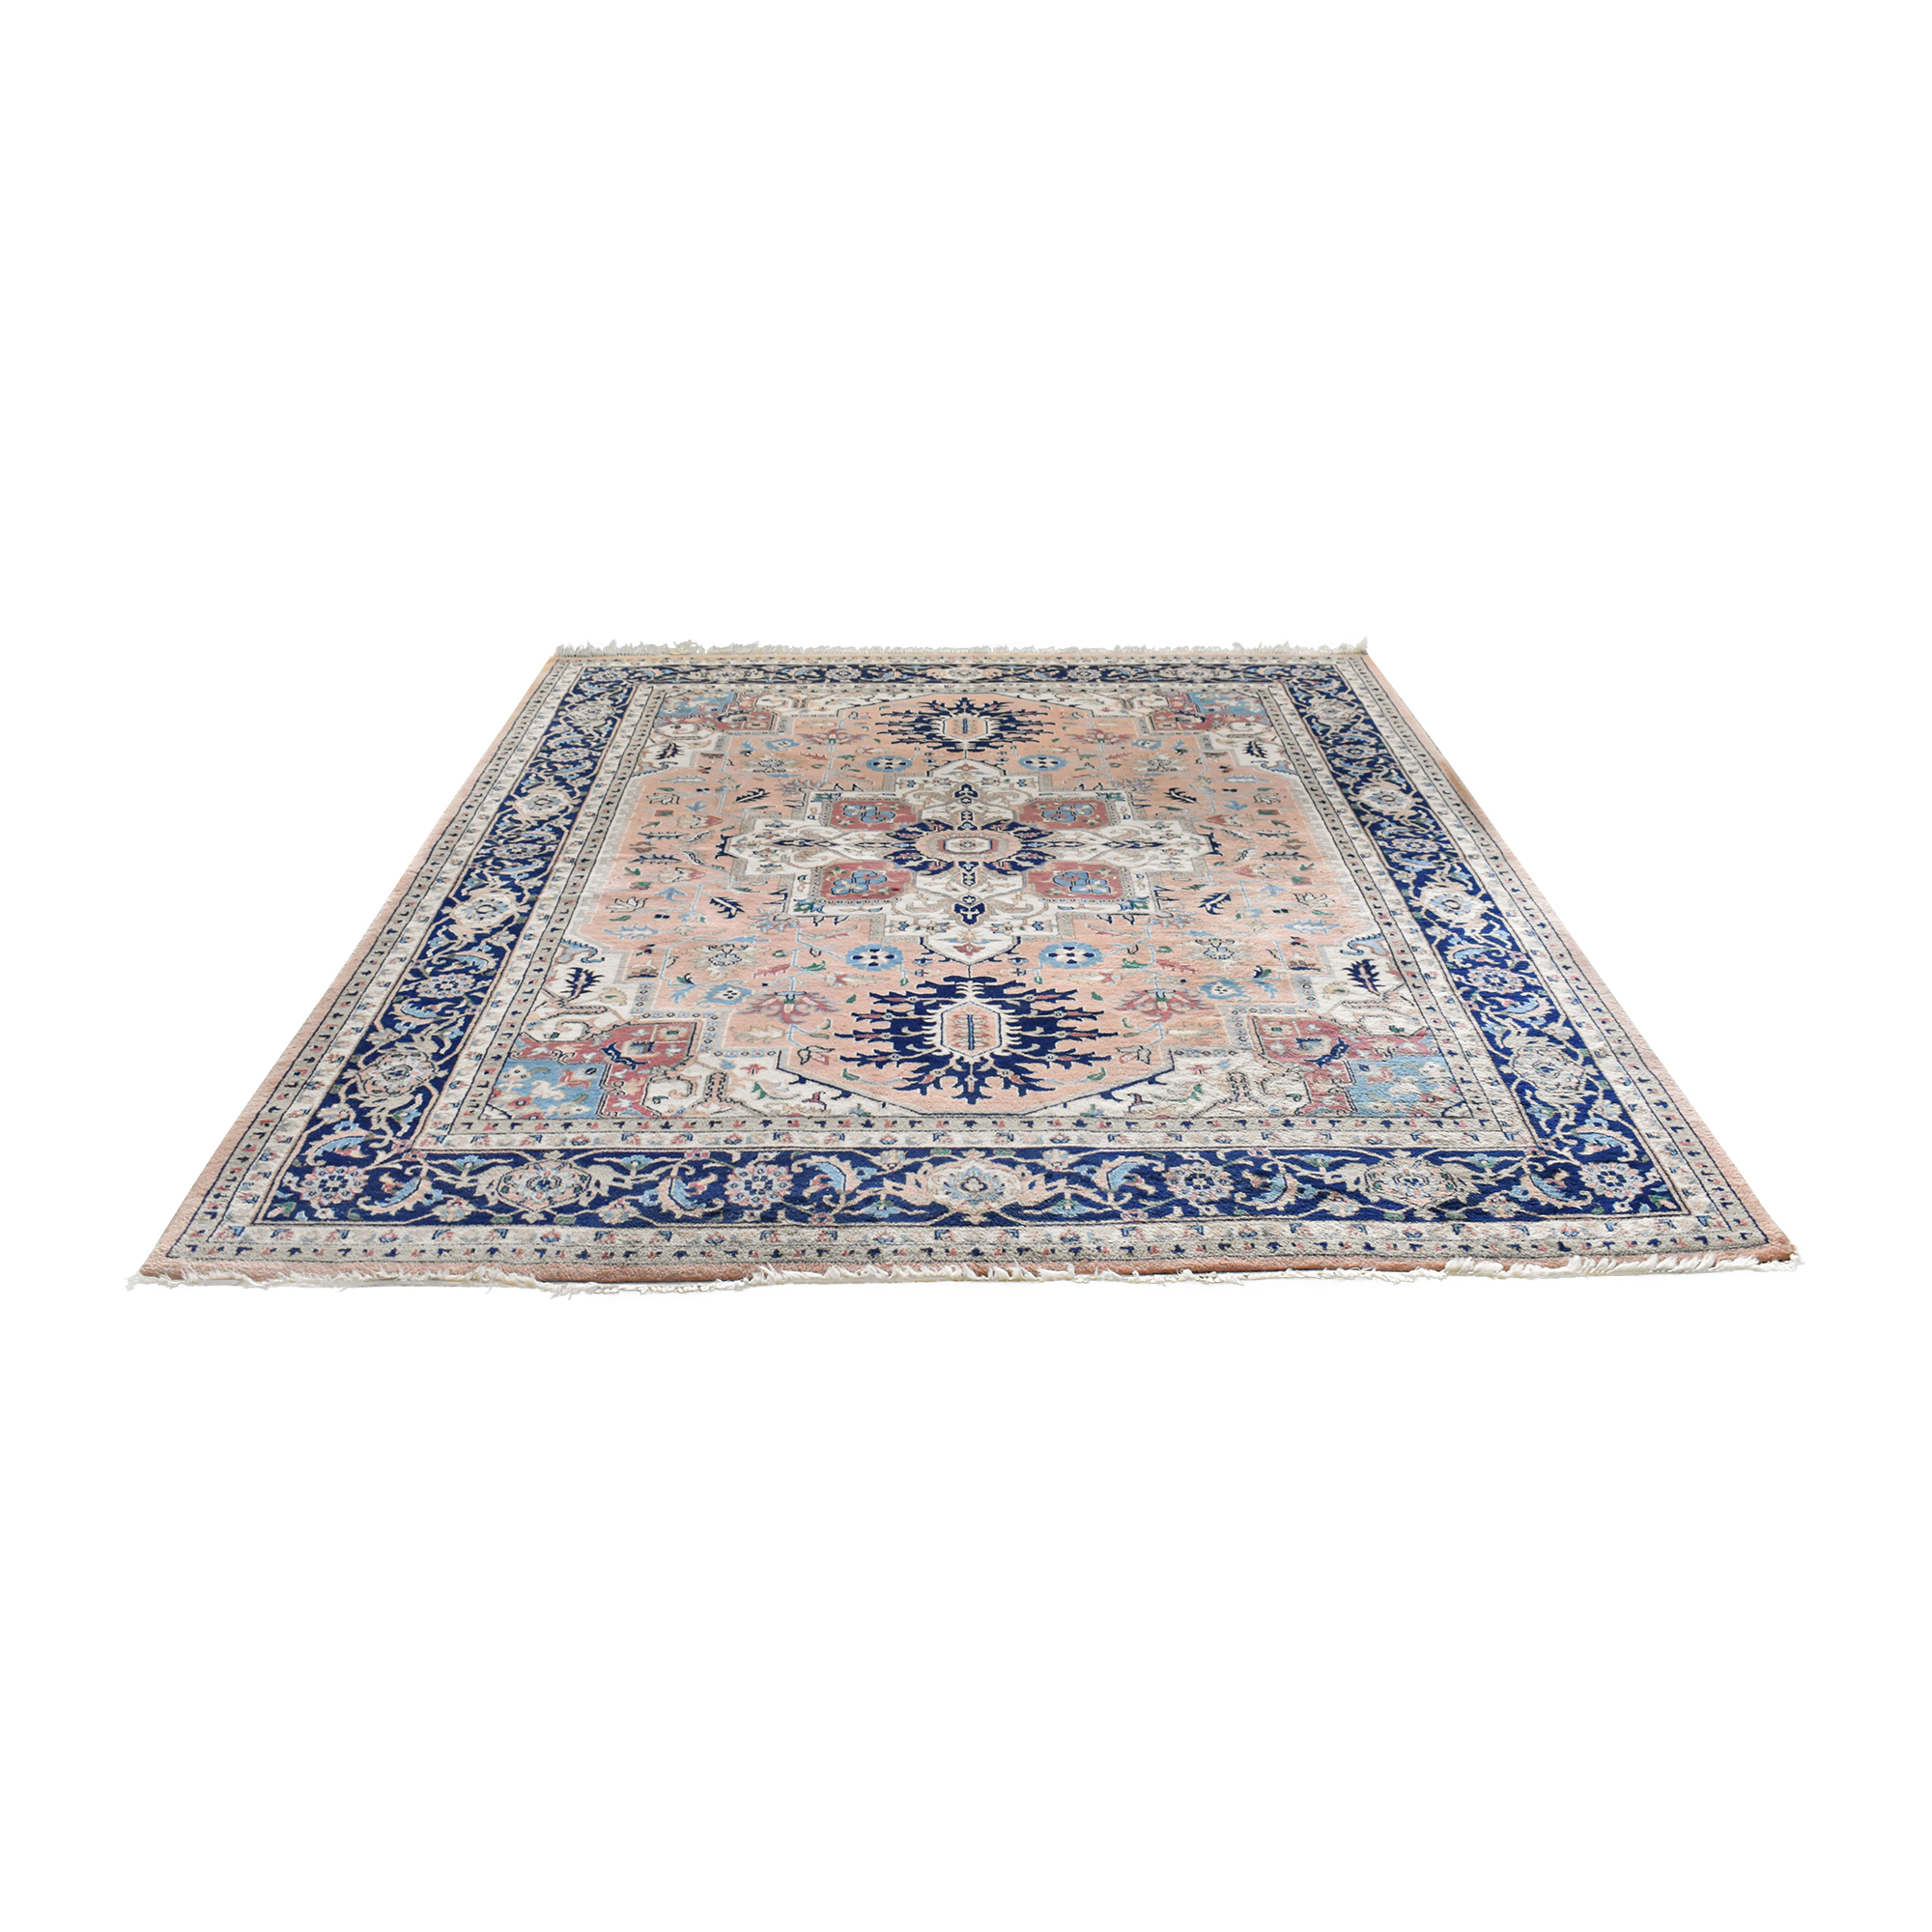 Patterned Area Rug coupon